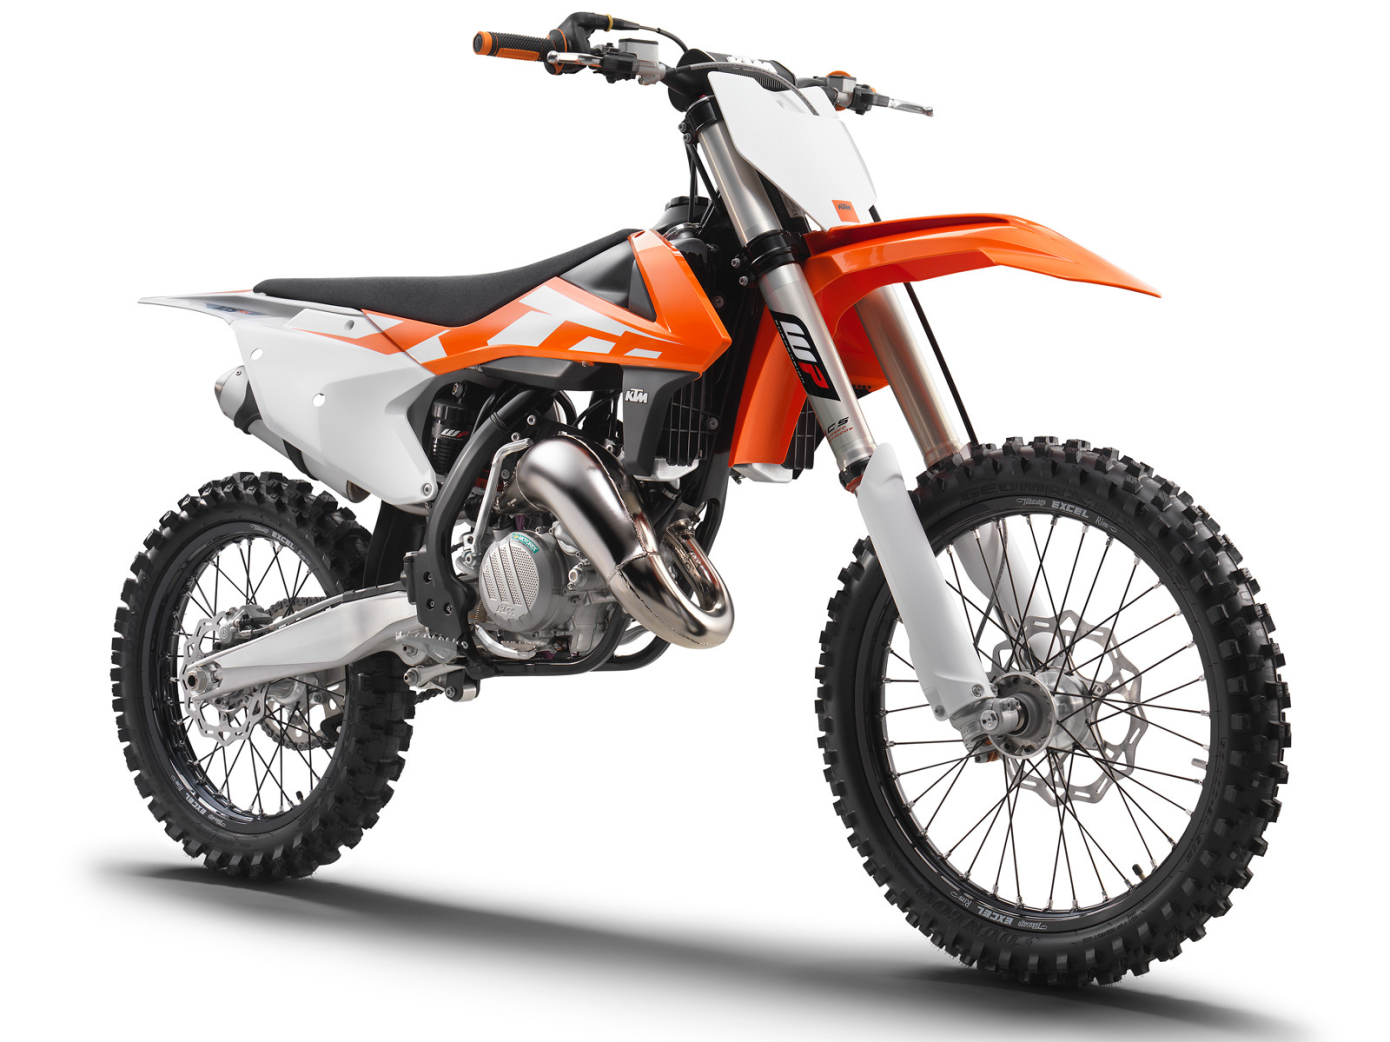 2016 Ktm 125 Sx 150 Two Stroke First Ride Review